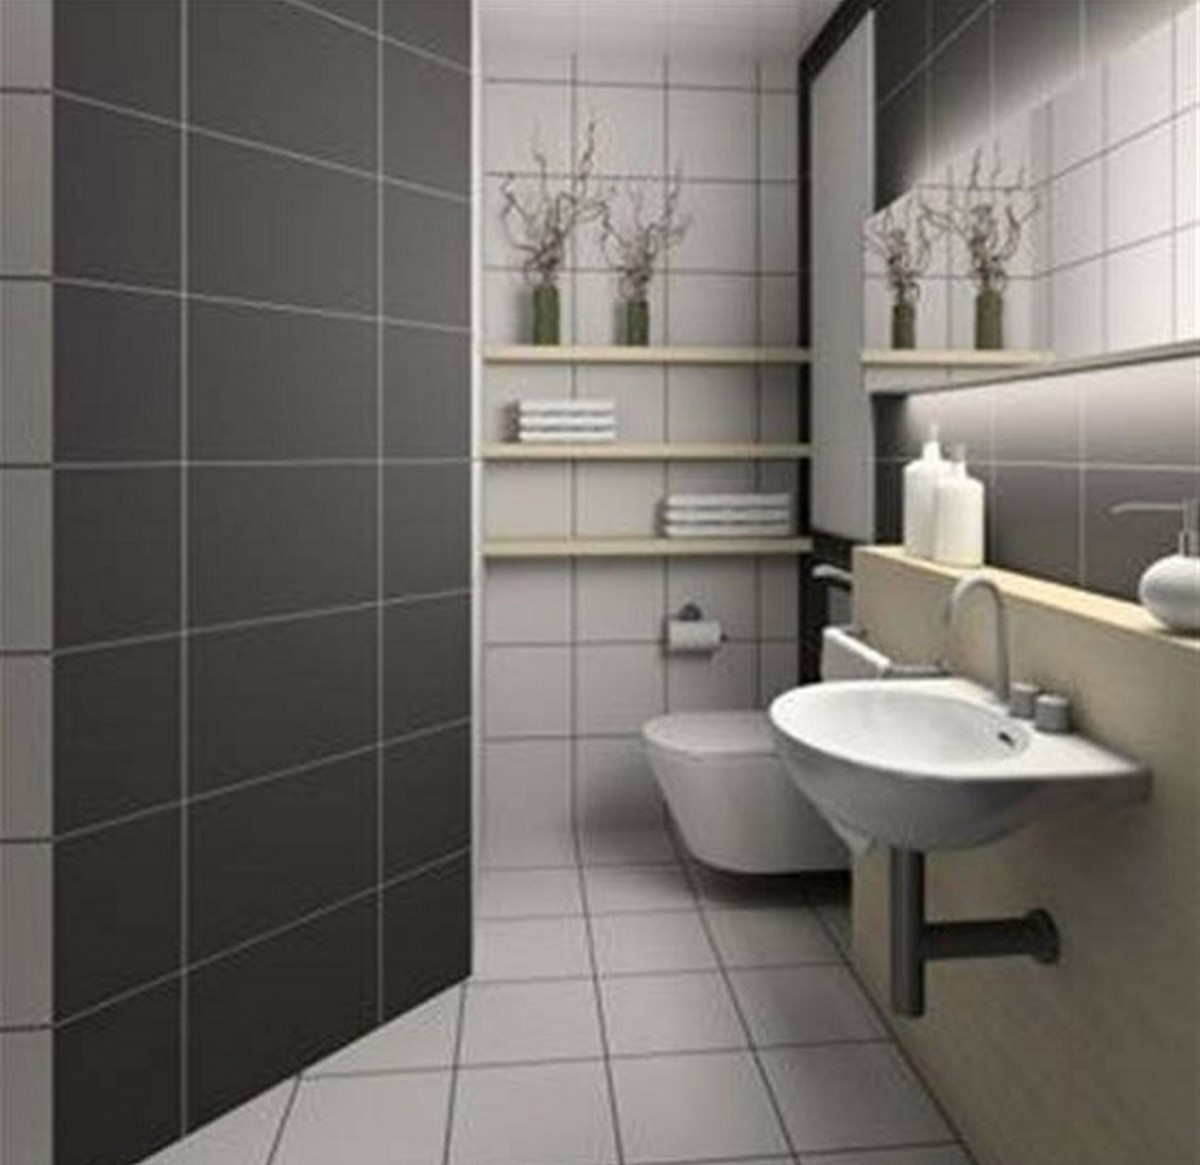 1 color ideas for bathrooms grey color bathroom 2c3b317e4431ed300bcc35a1d491b73d 6a00d8341dabcb53ef017d40d60d7b970c